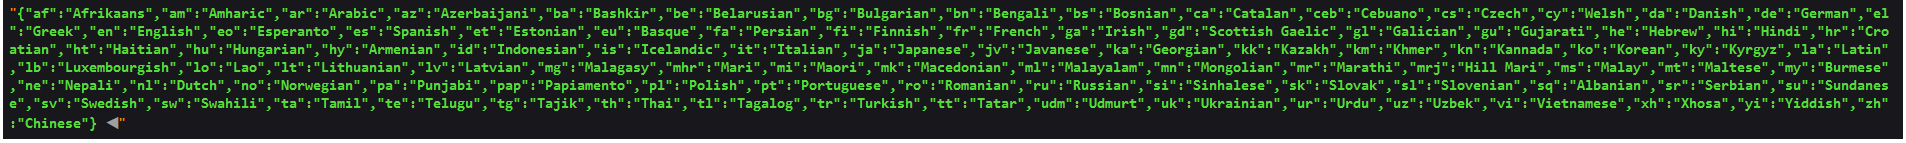 The list of supported Yandex.Translate languages